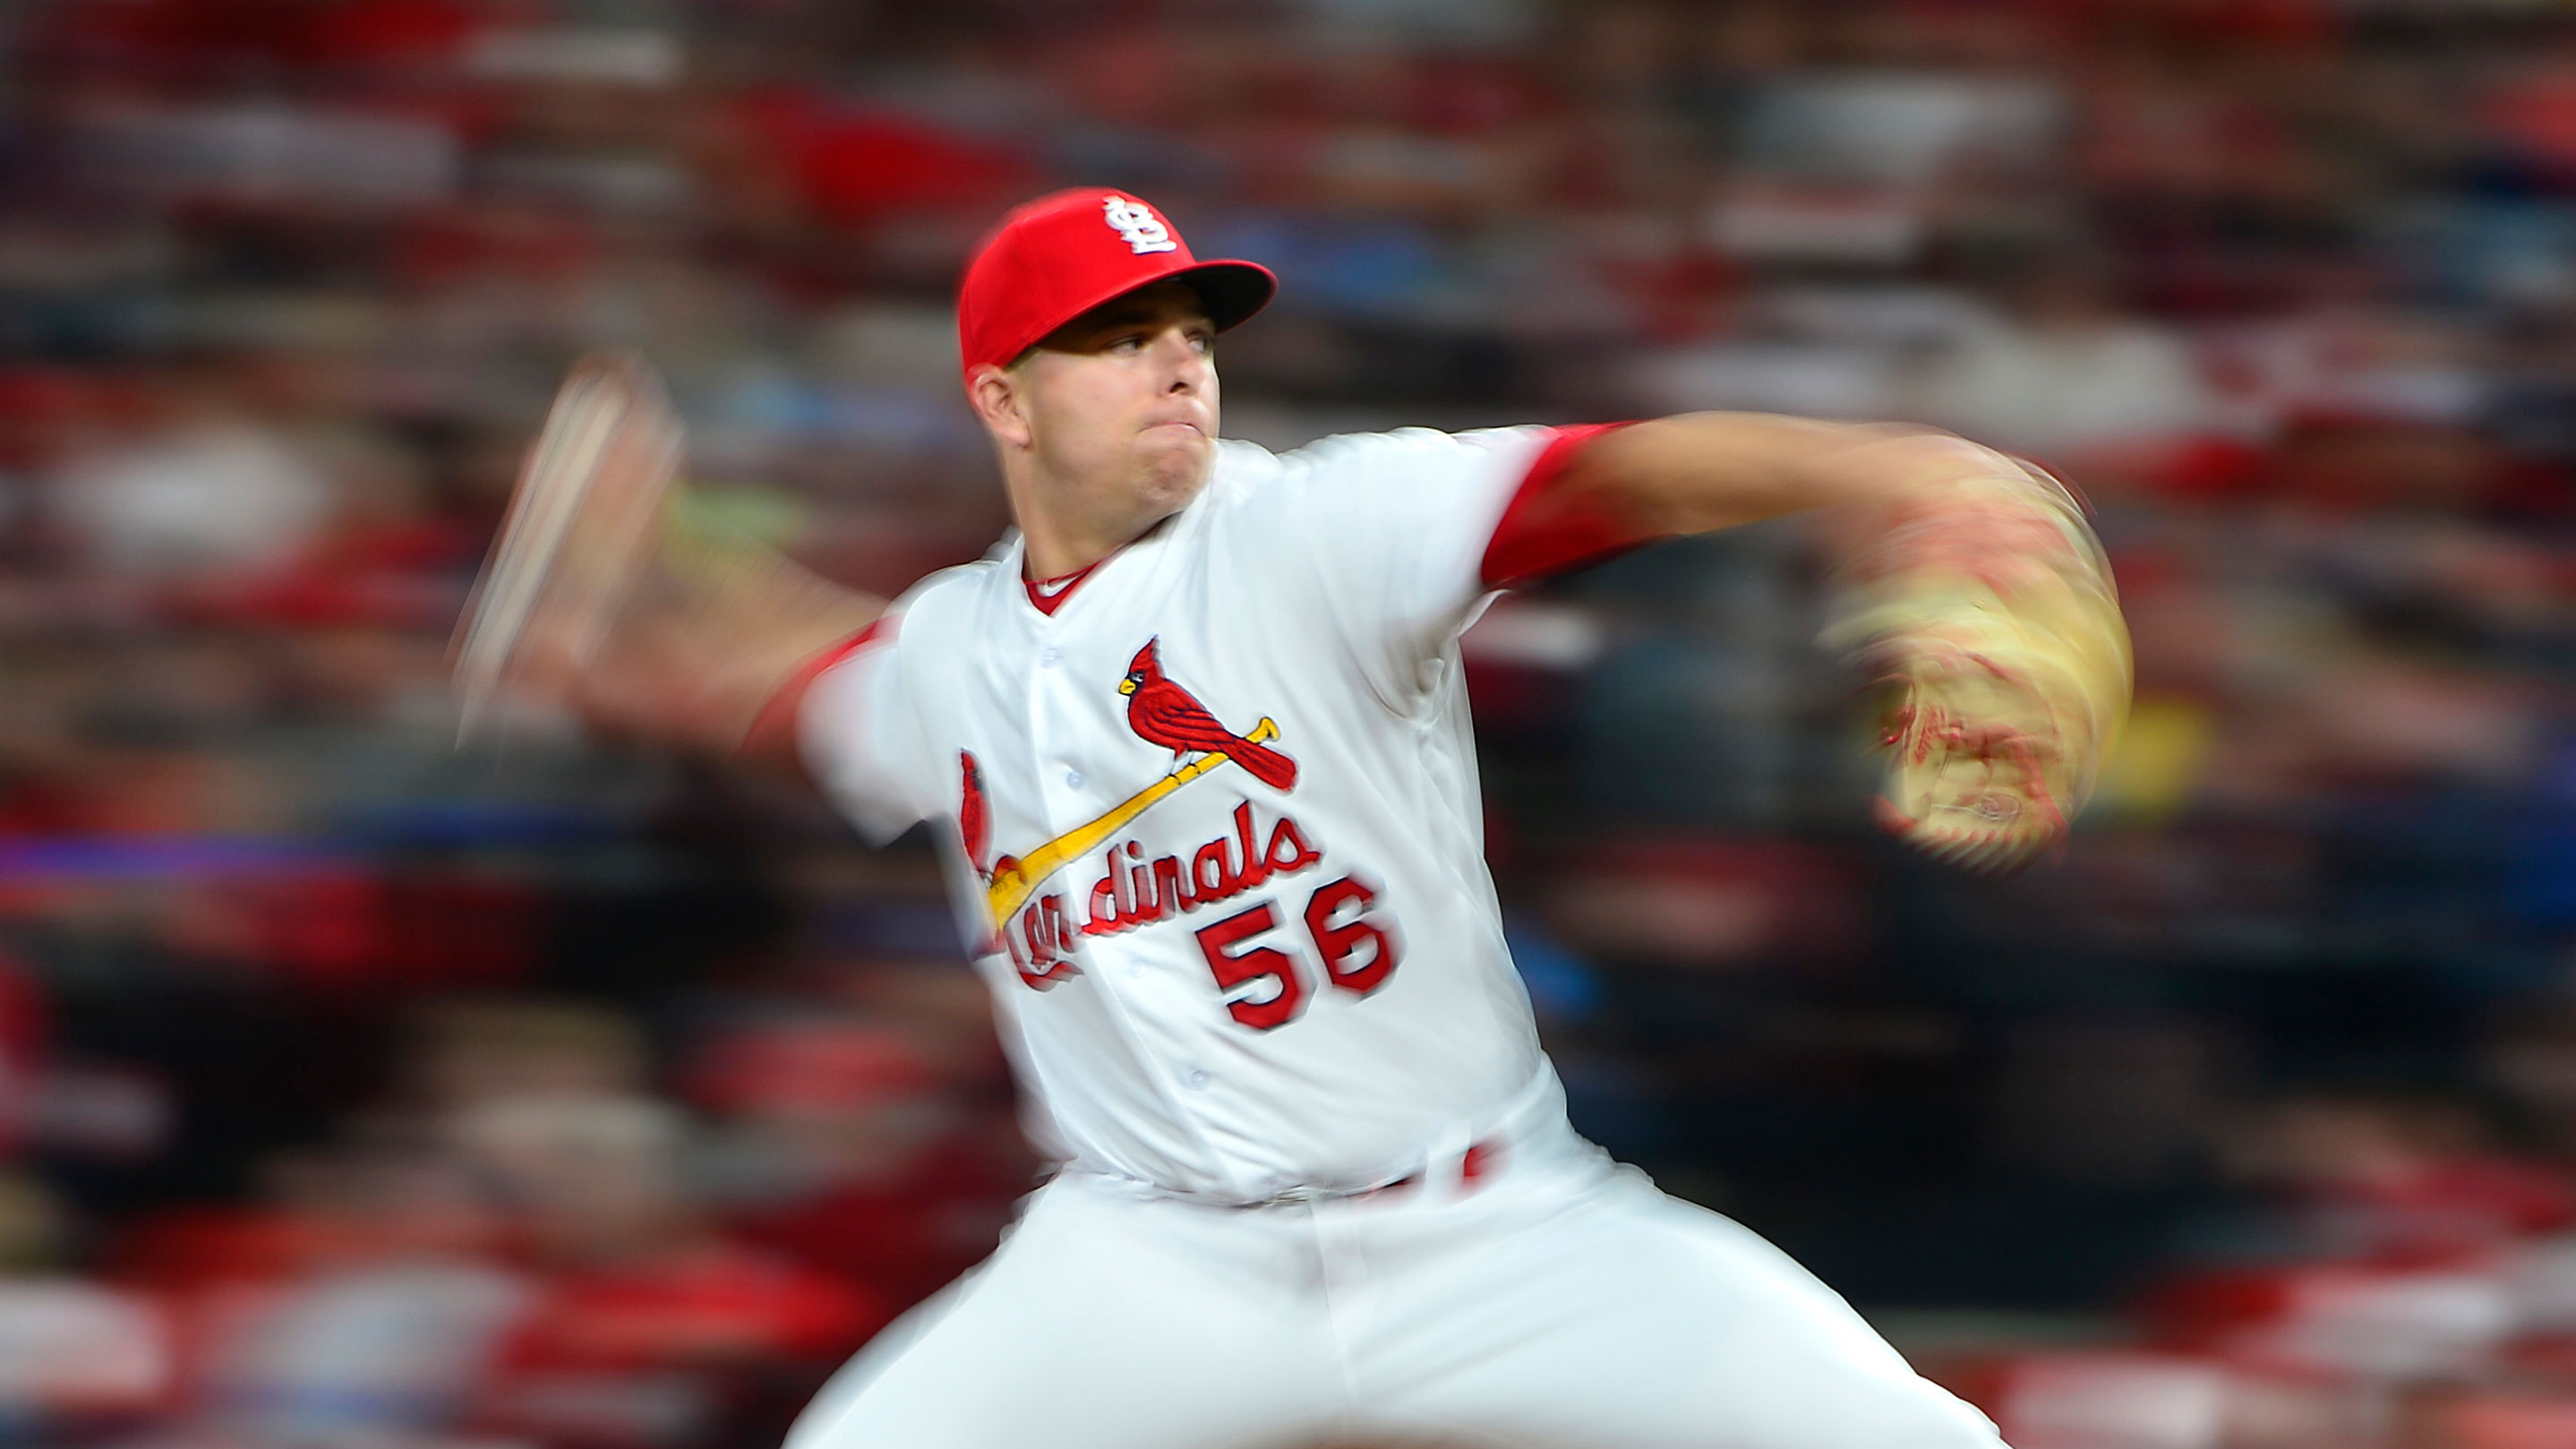 Cardinals recall reliever Helsley, option Sosa to minors